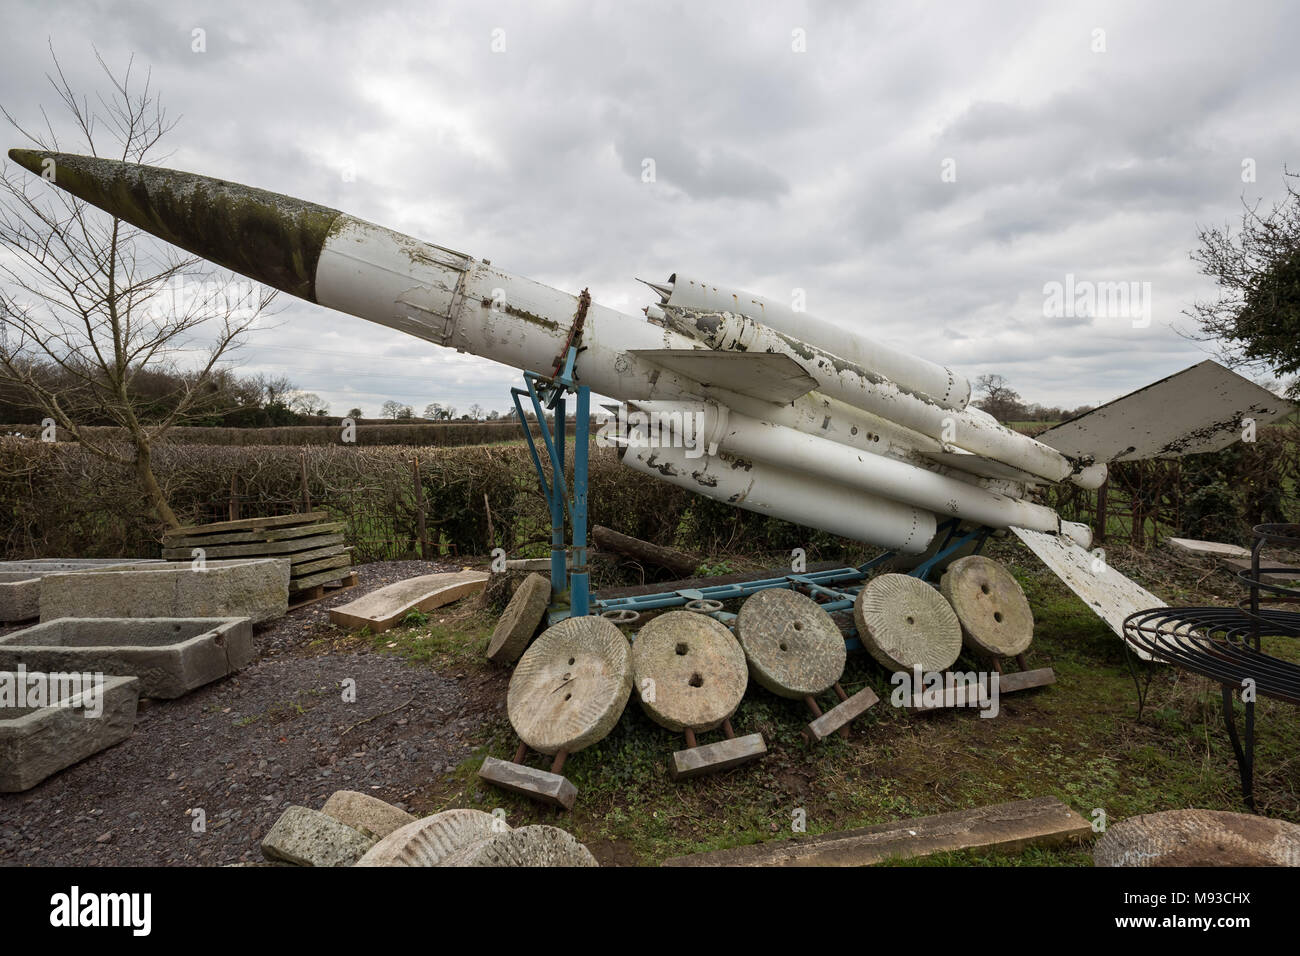 A Bristol Bloodhound surface-to-air missile for sale in a Somerset reclamation yard, UK. Stock Photo